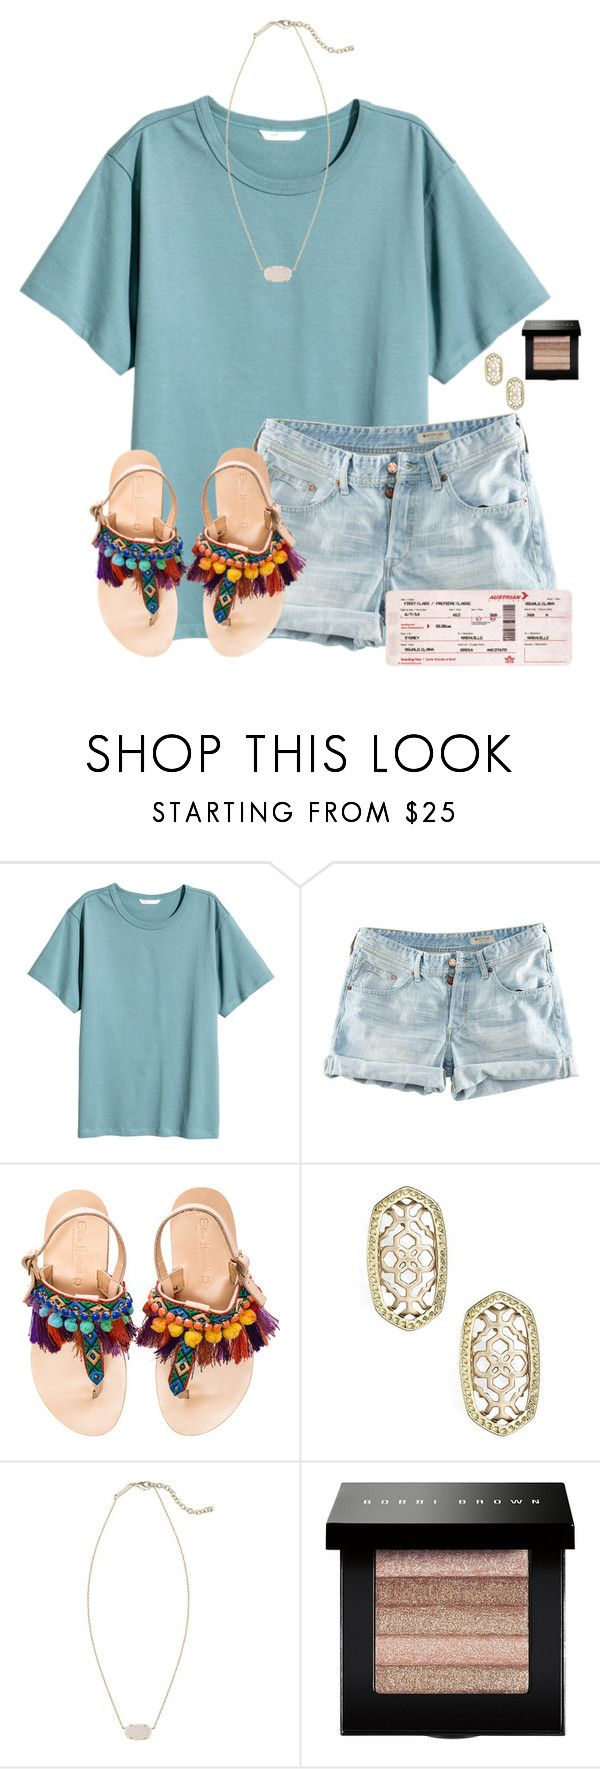 """Going to Kentucky this Summer with my best friend!!"" by flroasburn ❤ liked on Polyvore featuring H&M, Elina Linardaki, Kendra Scott and Bobbi Brown Cosmetics"